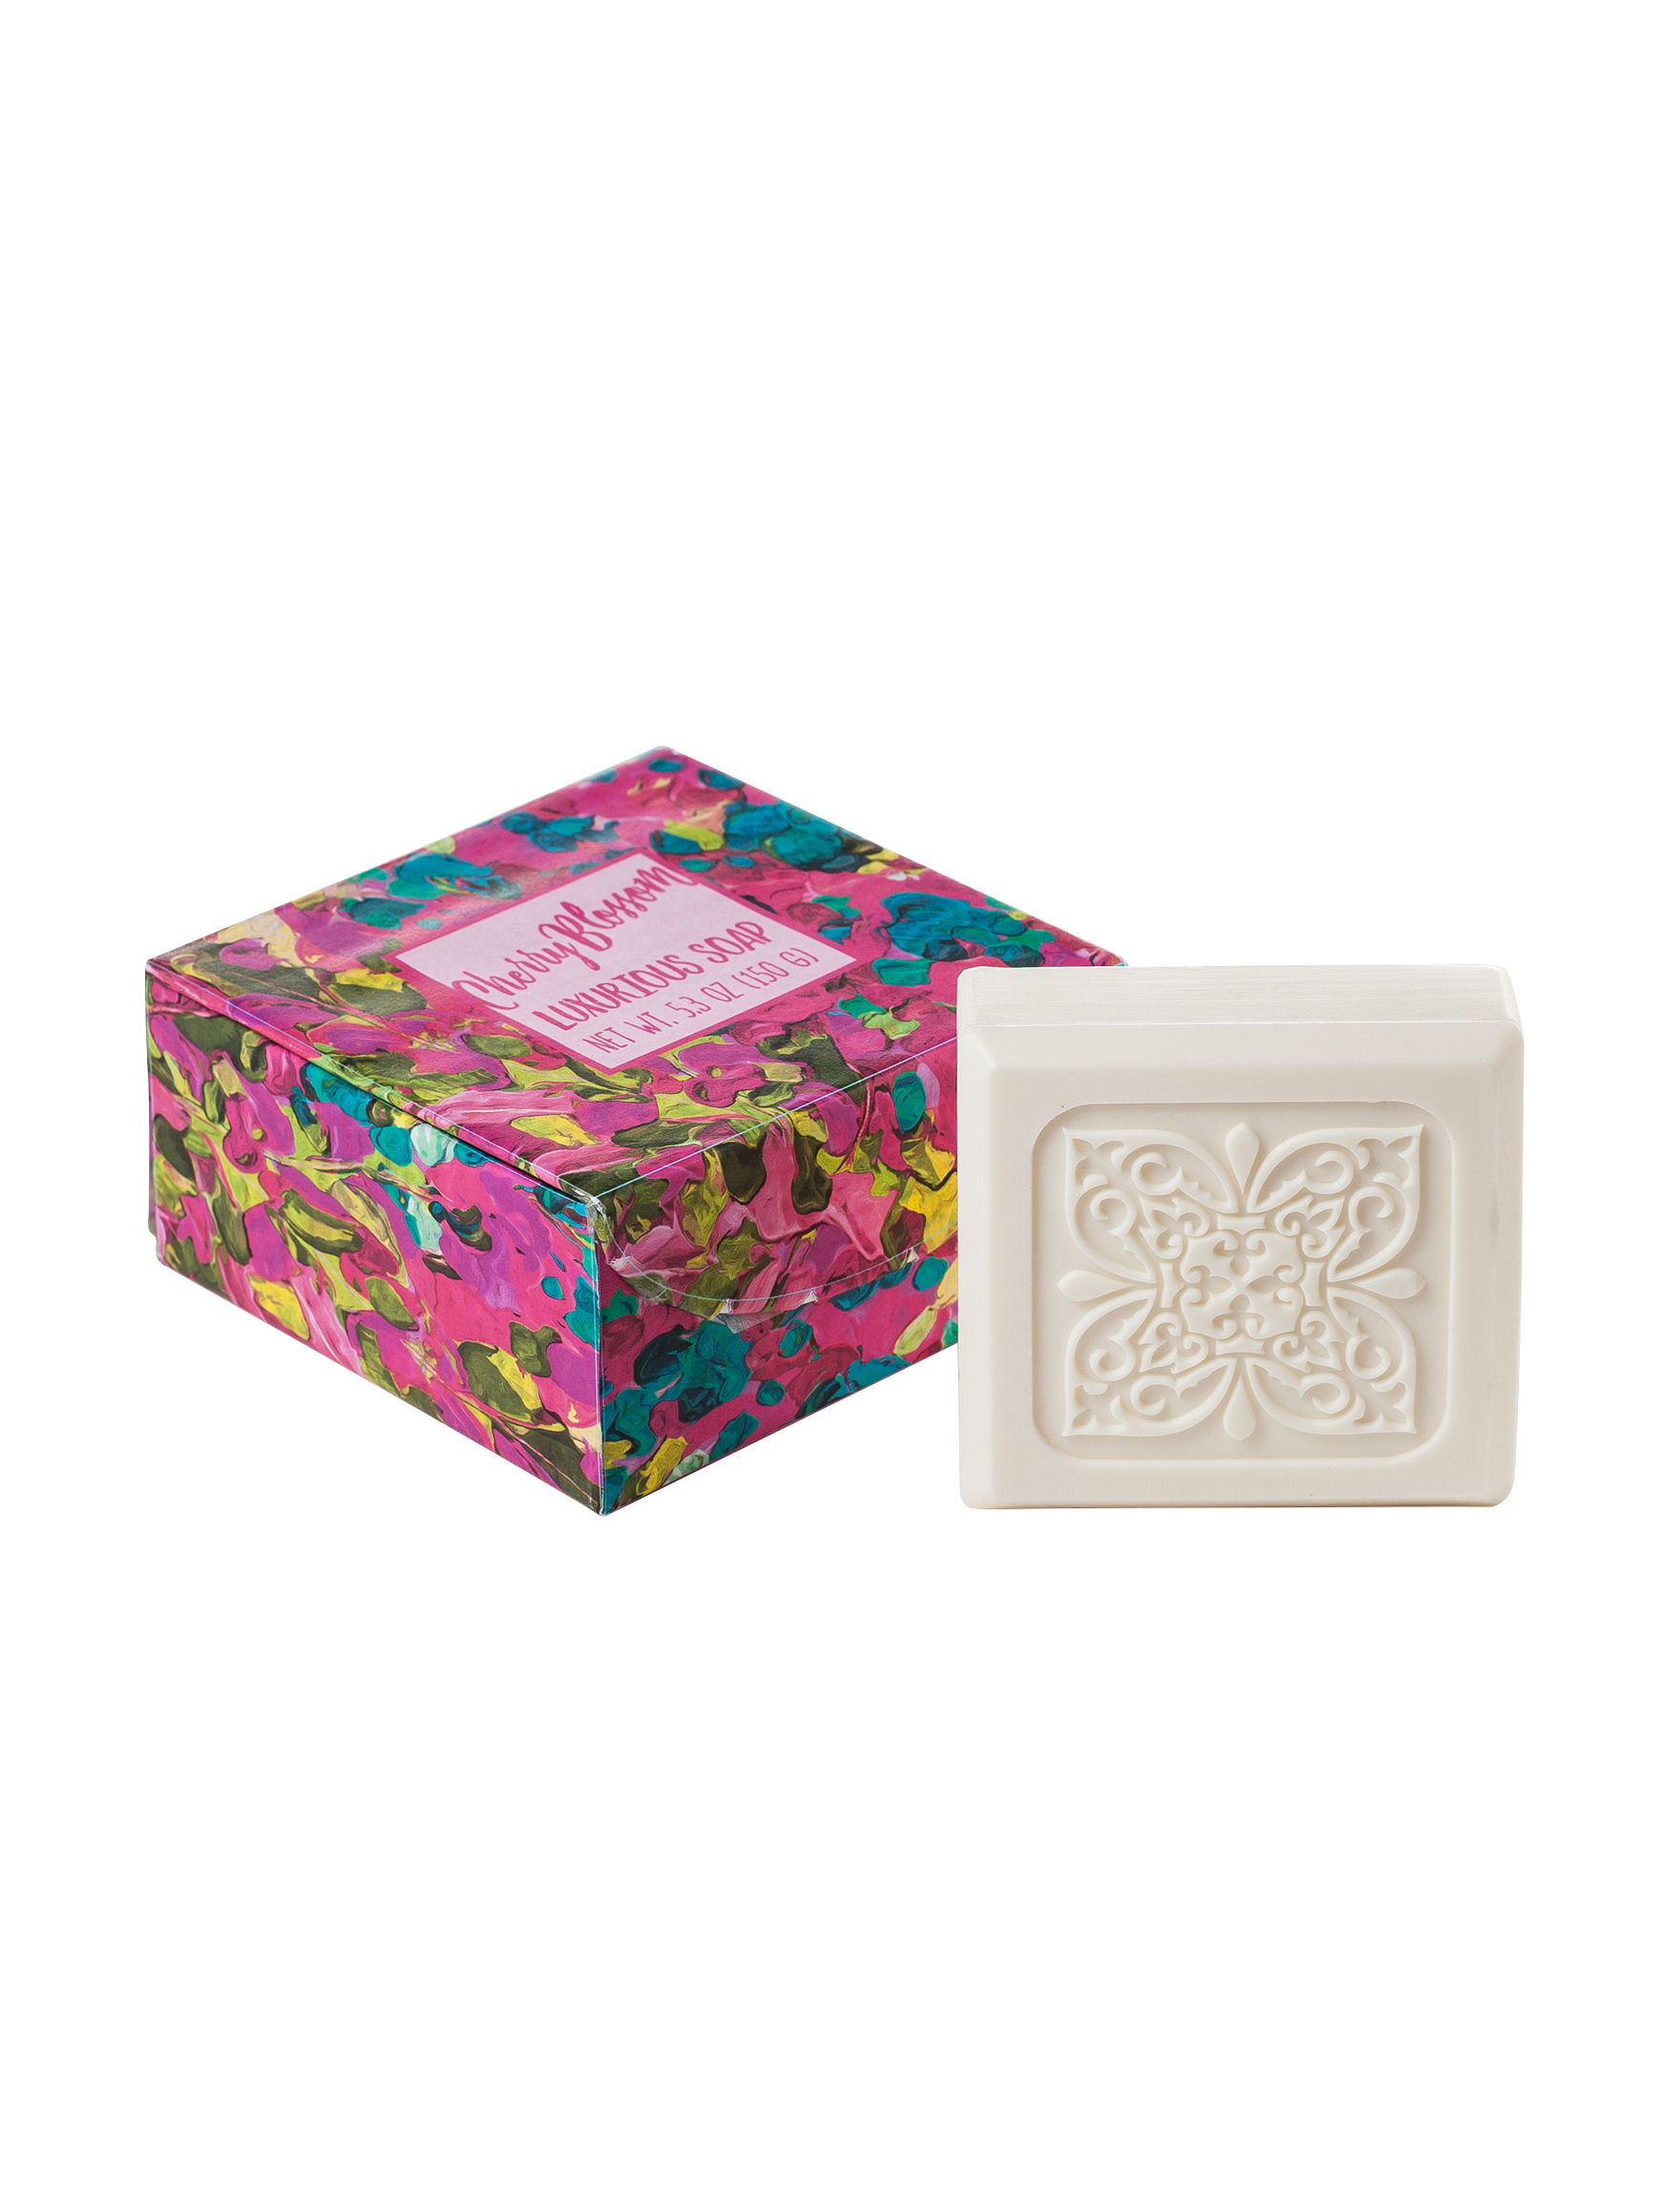 Common Wealth Soaps Cherry Blossom Soaps